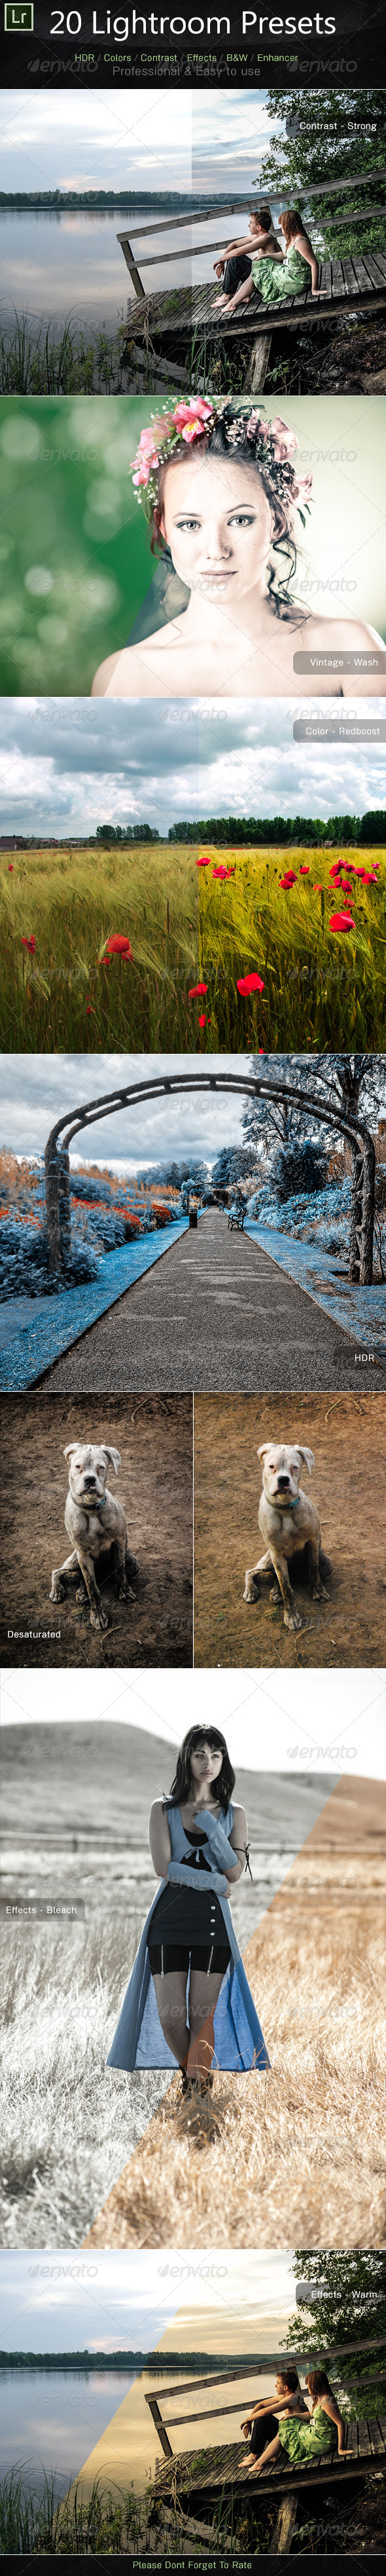 GraphicRiver 20 Lightroom Presets 5266205